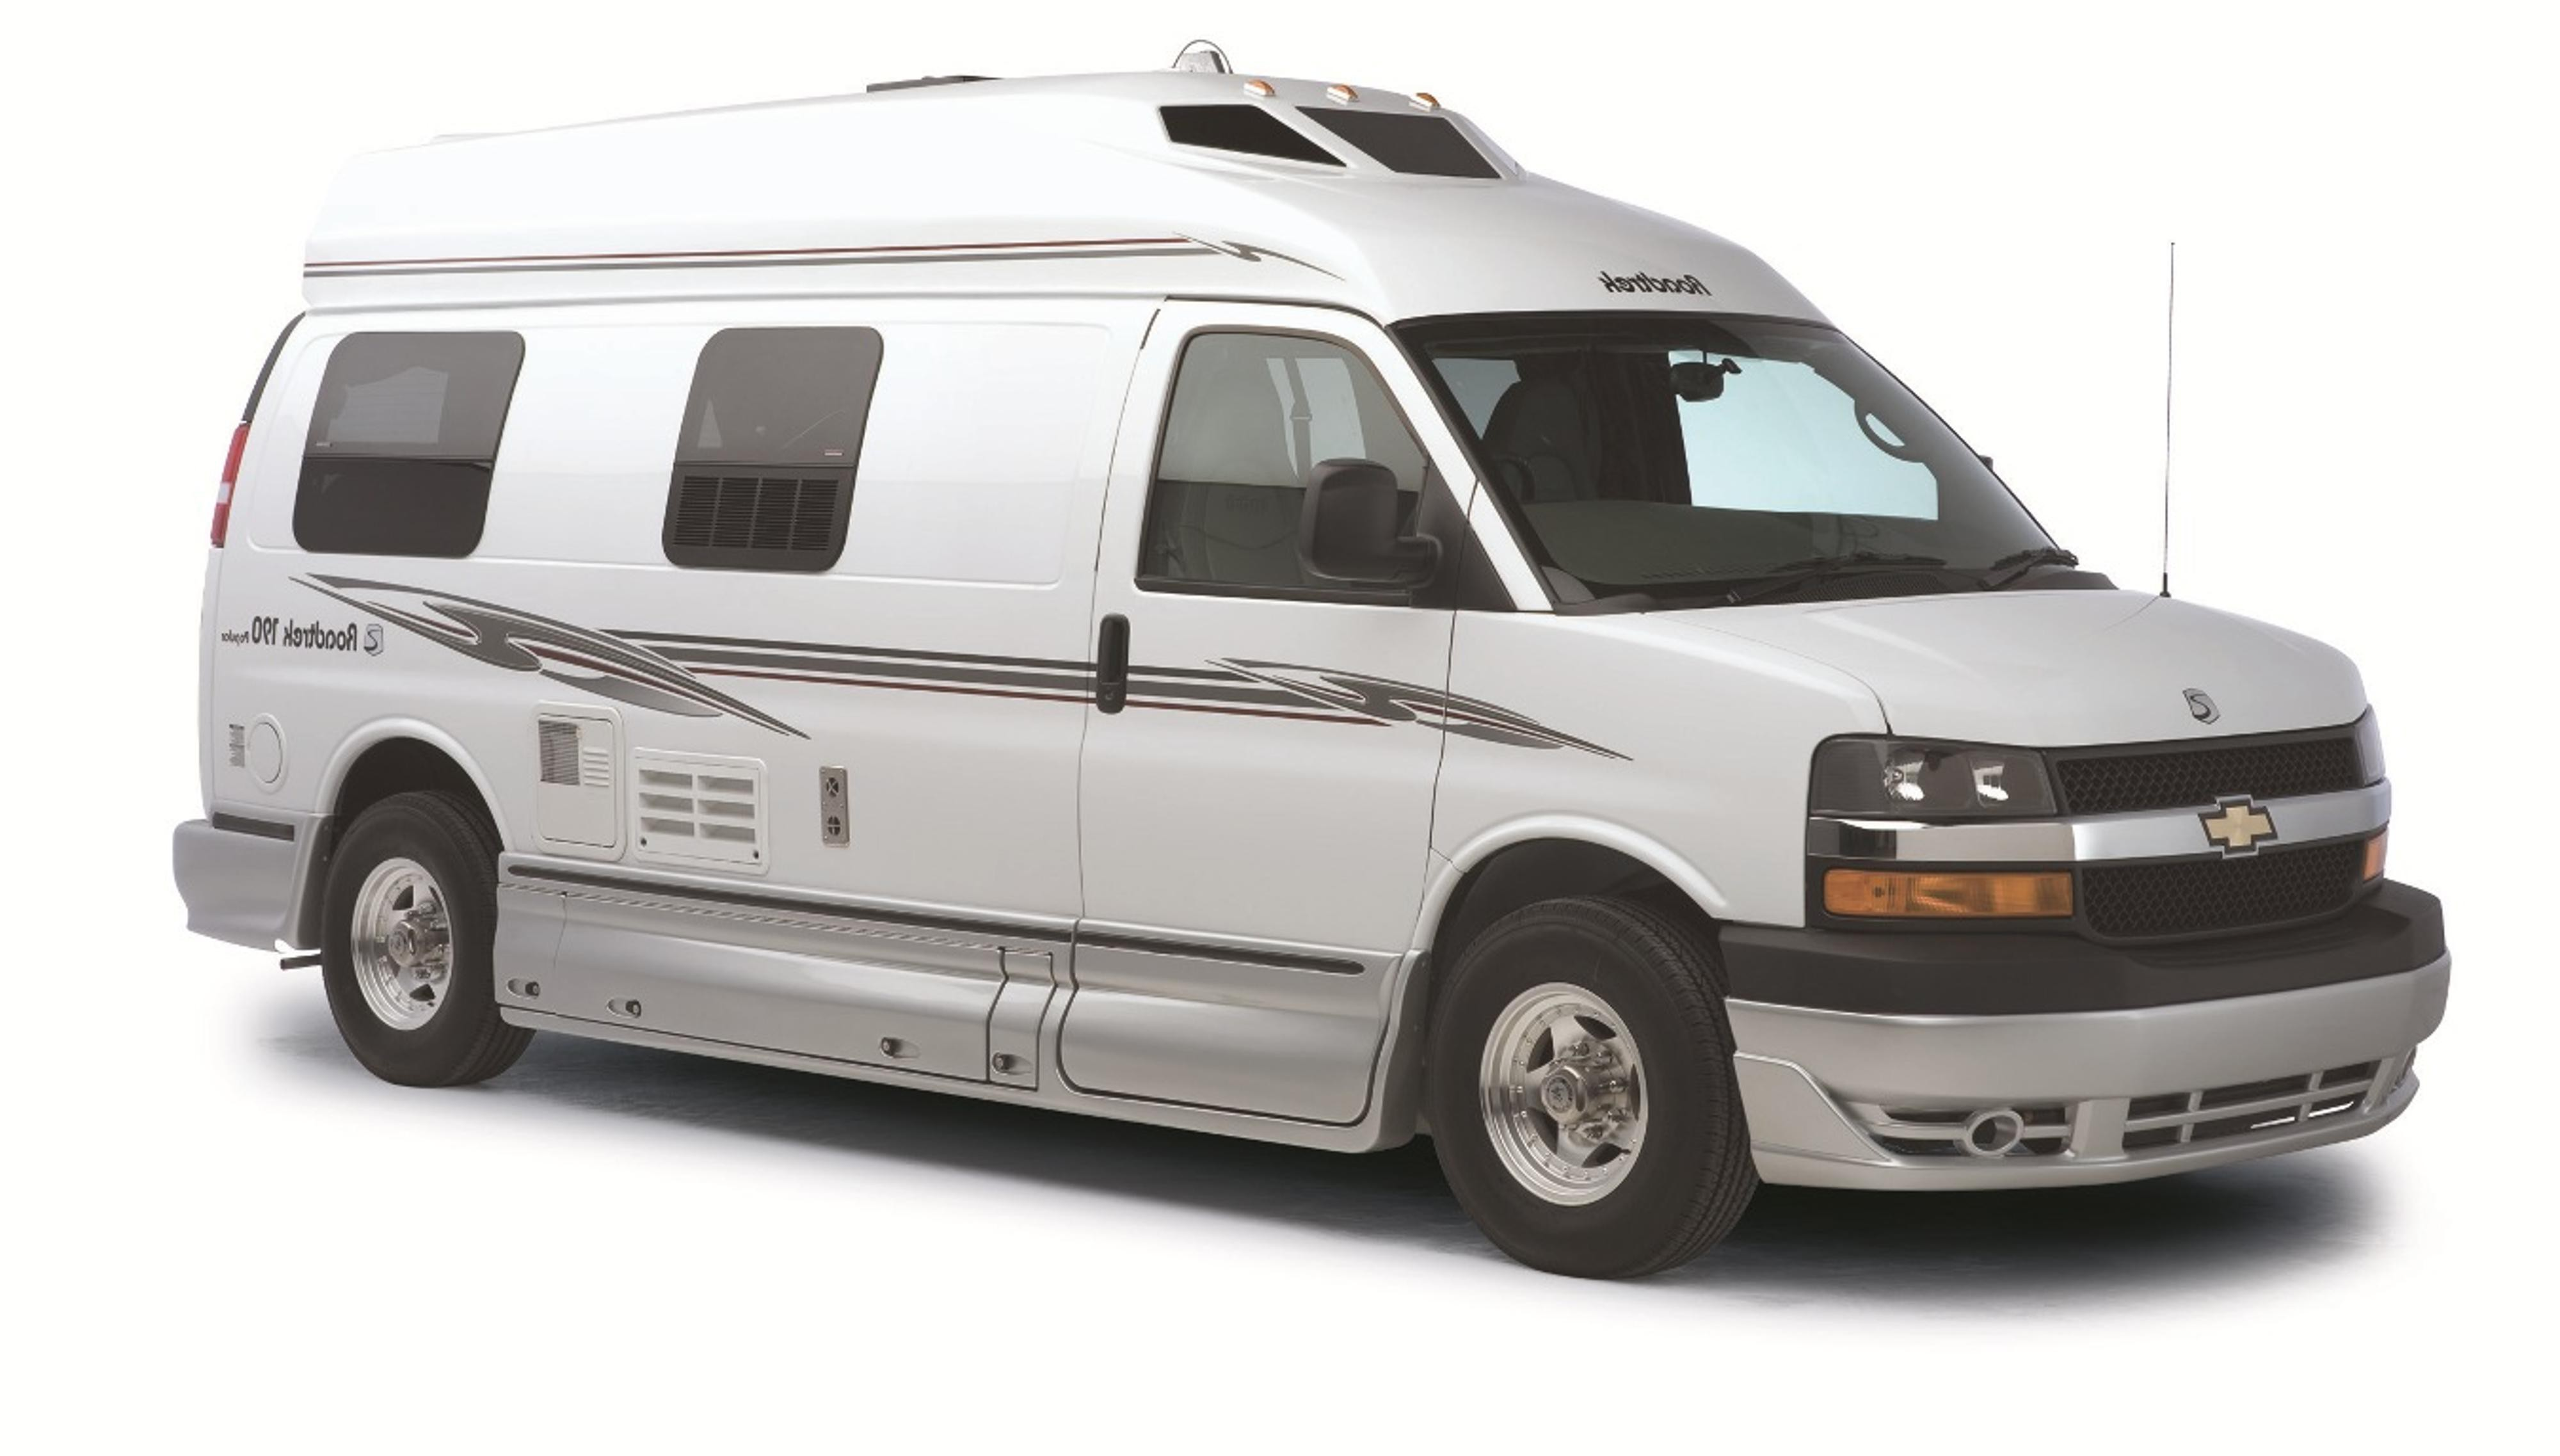 Owasco rv rentals rent an rv or trailer rv rentals for Mercedes benz rv rentals